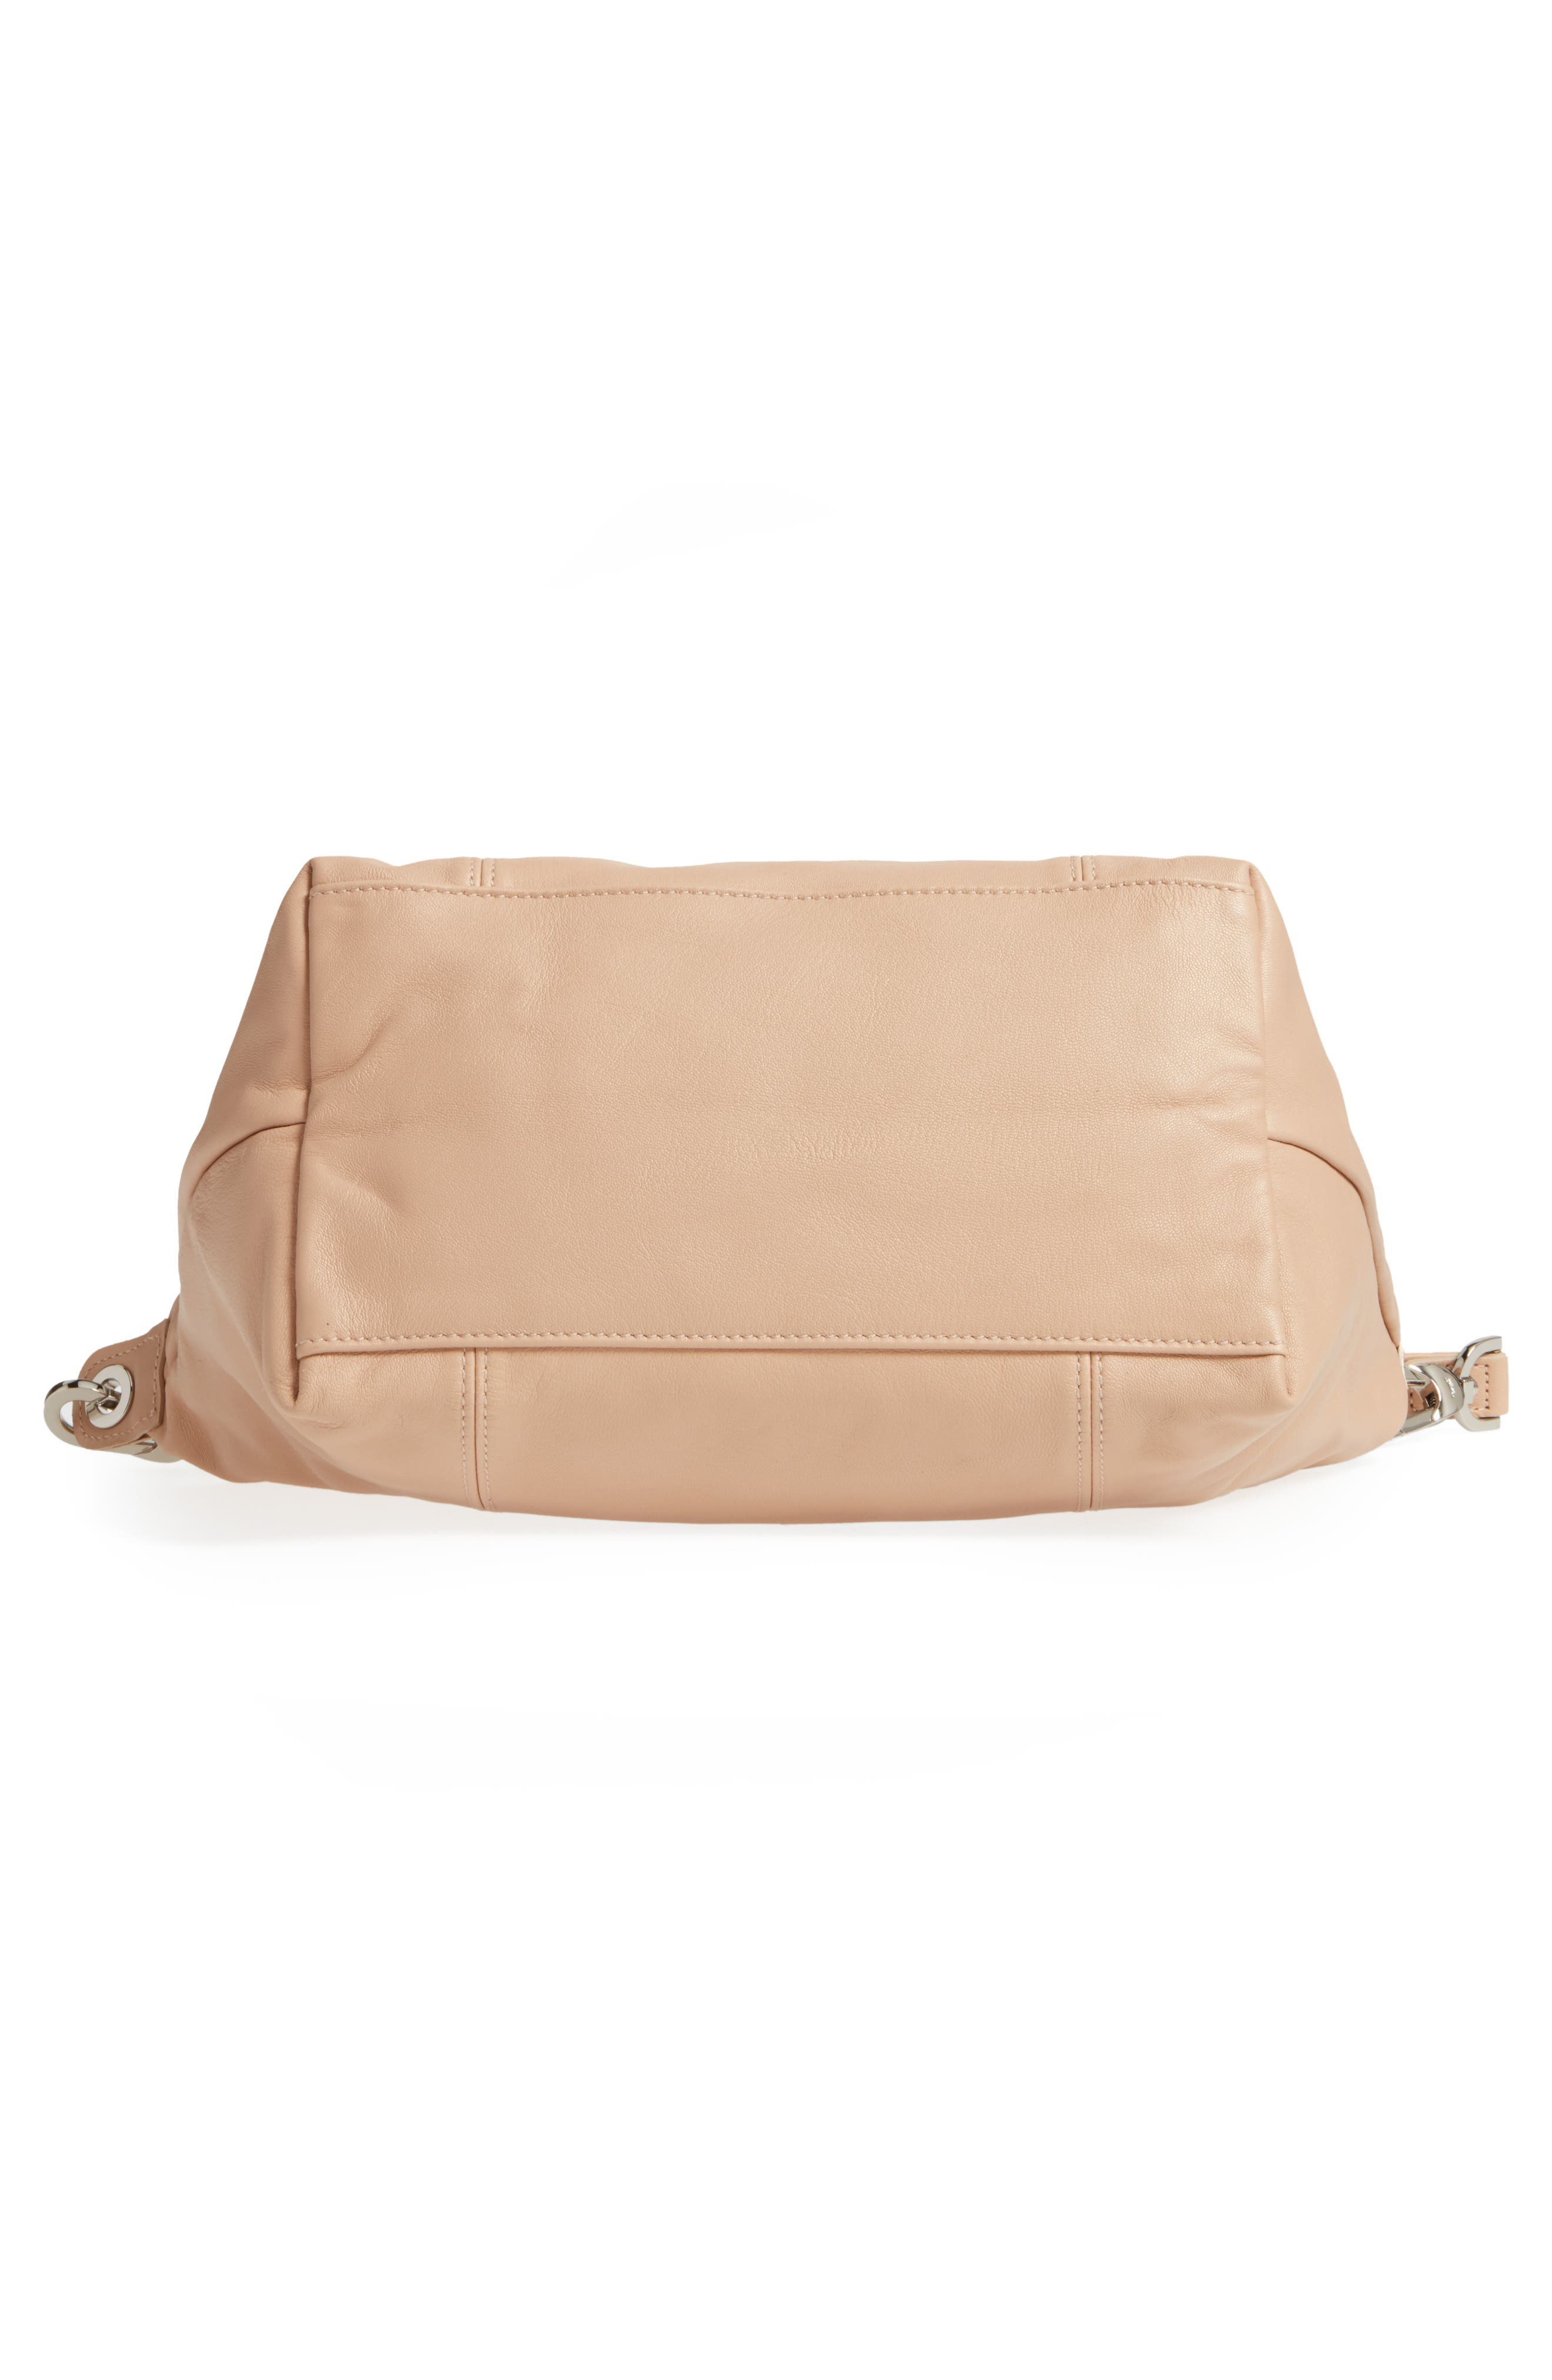 Small 'Le Pliage Cuir' Leather Top Handle Tote,                             Alternate thumbnail 81, color,